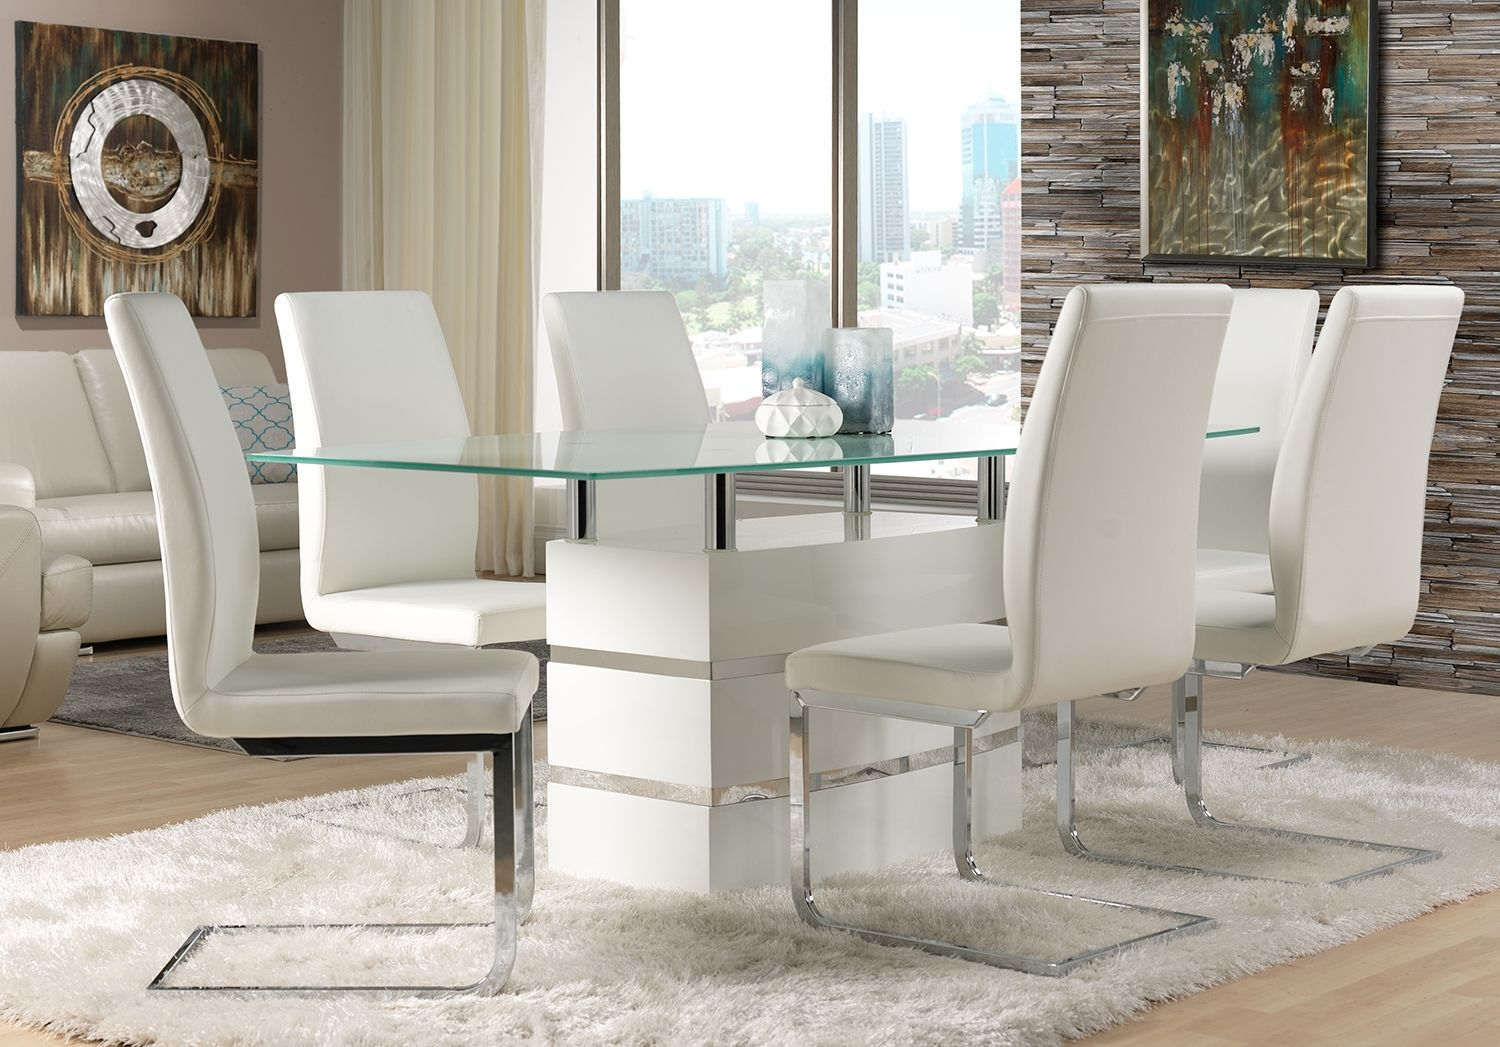 White Leather Dining Room Chairs Modern Dining Room White Leather Chair White Leather Dining Chairs